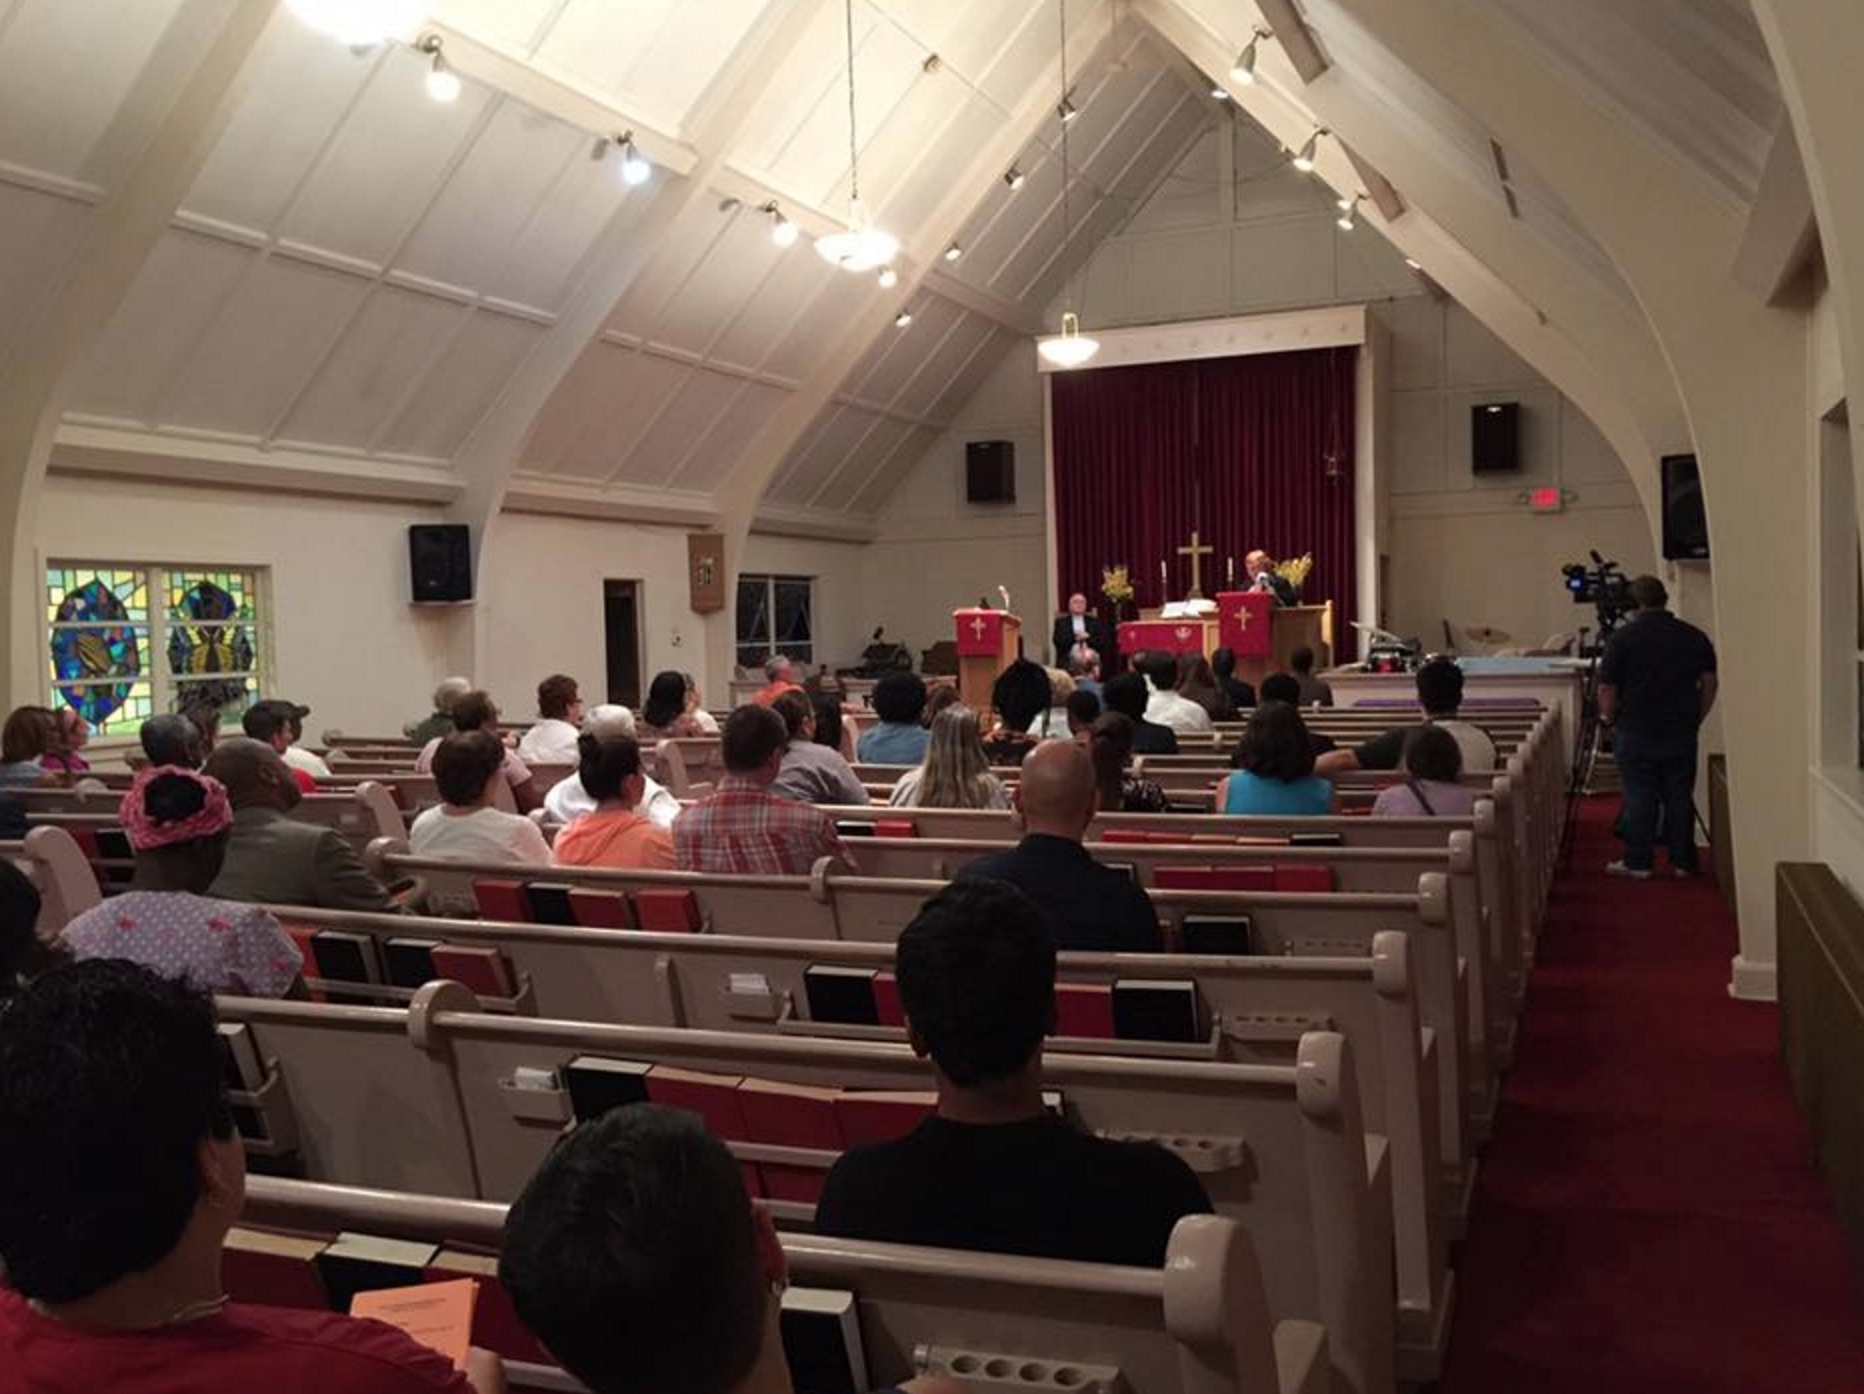 Christ Church Shooting Photo: Residents Come Together At Interfaith Solidarity Event In